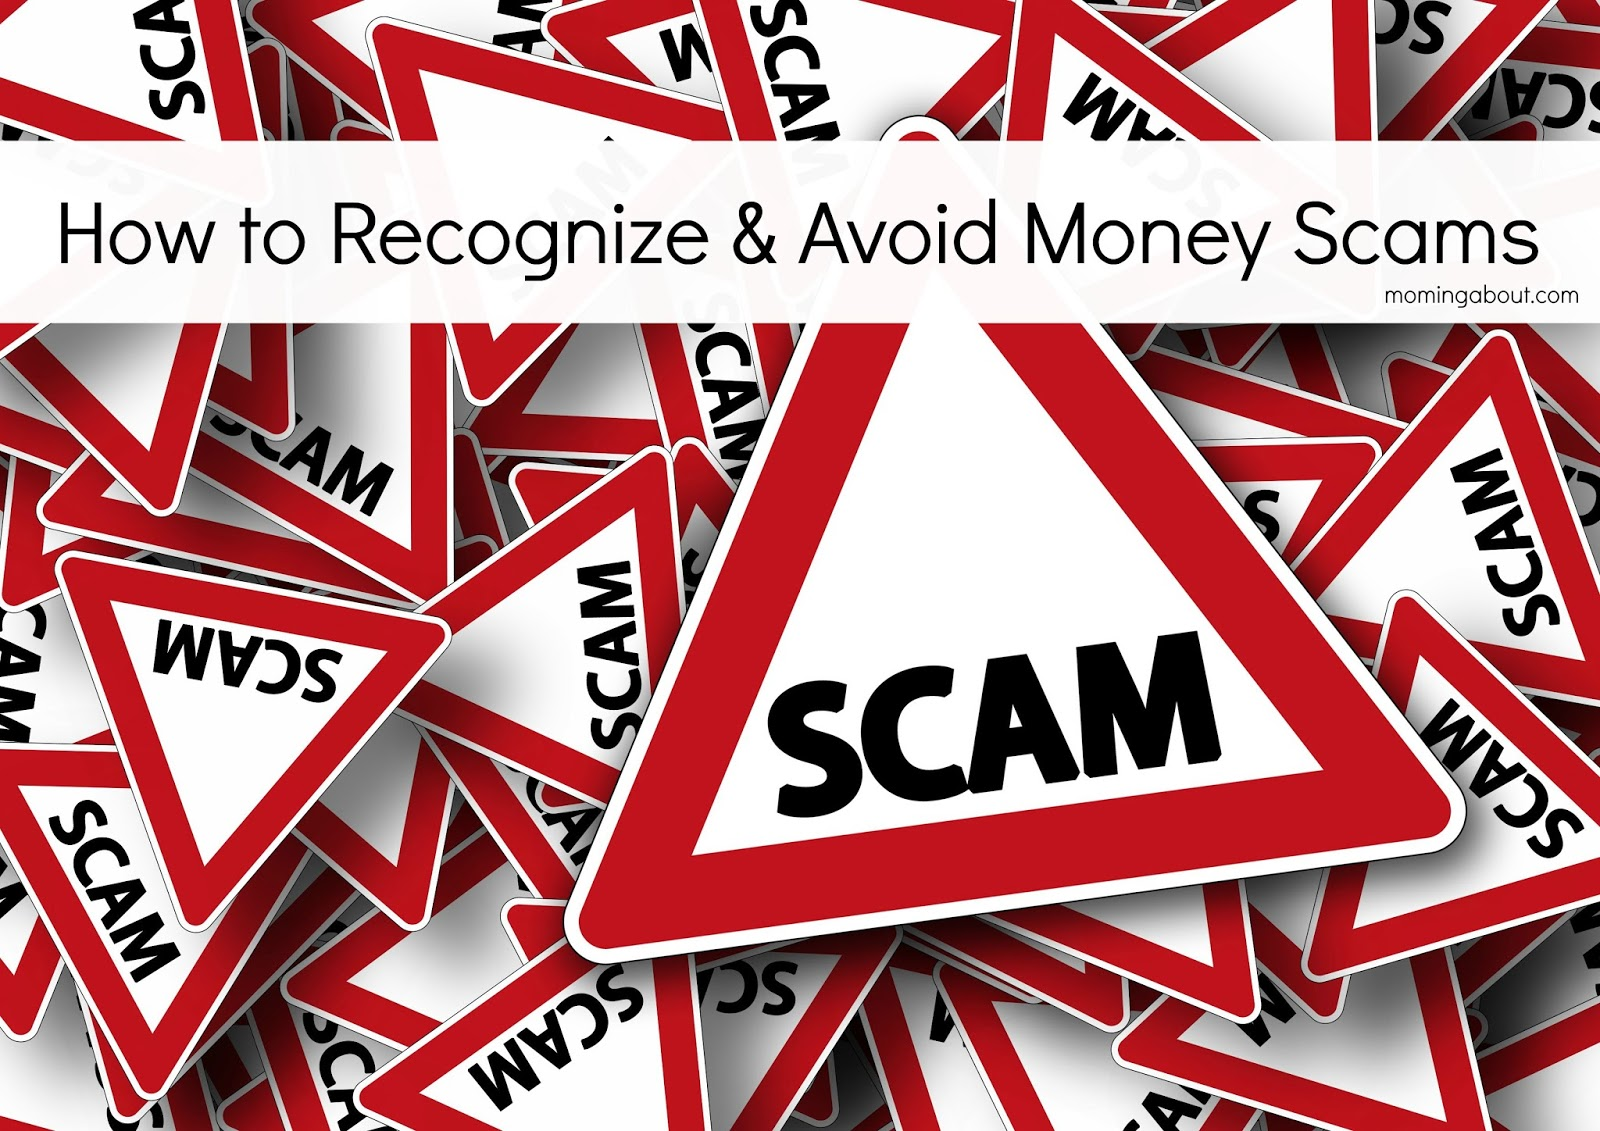 Don't Be a Victim to Money Scams